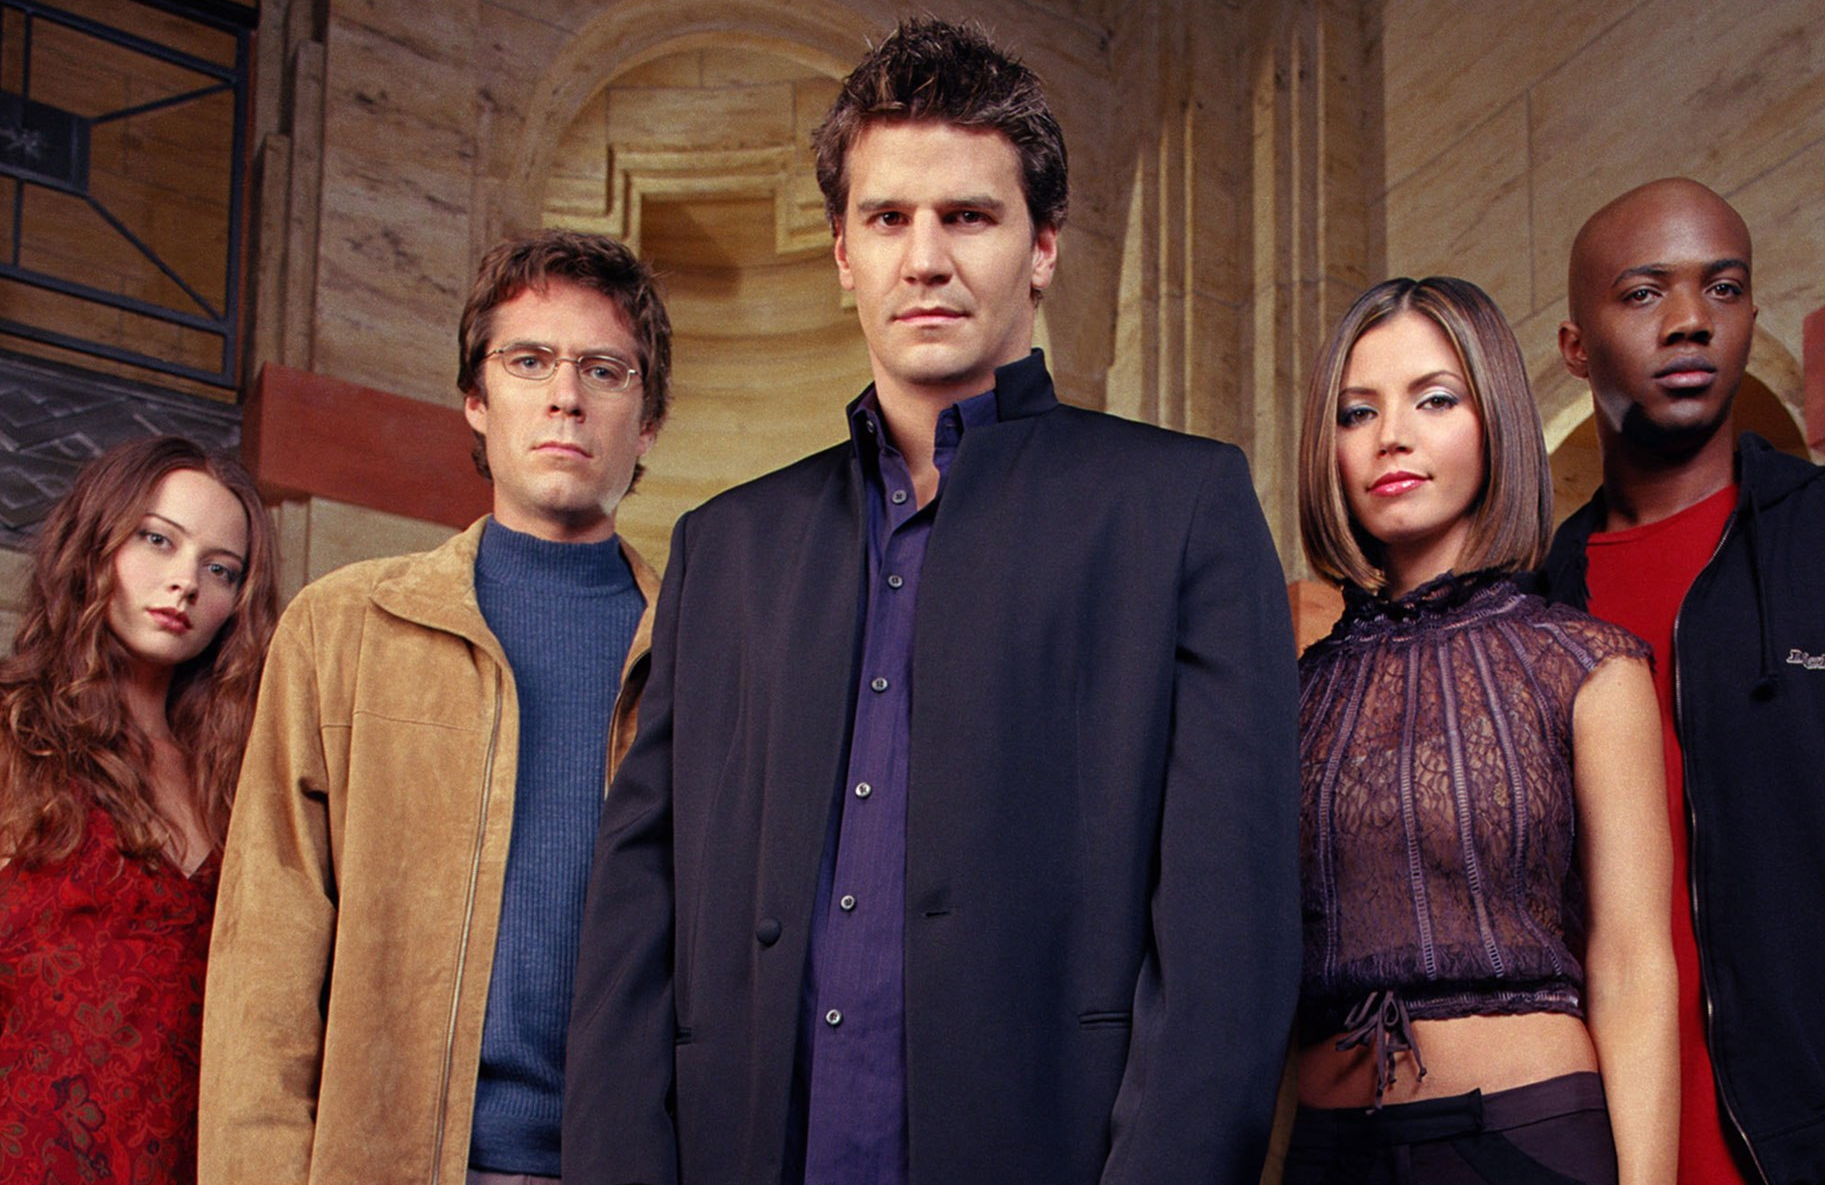 Amy Acker, Alexis Denisof, David Boreanaz, Charisma Carpenter and J. August Richards in a promotional photo for Angel's third season. (20th Century Fox Television)